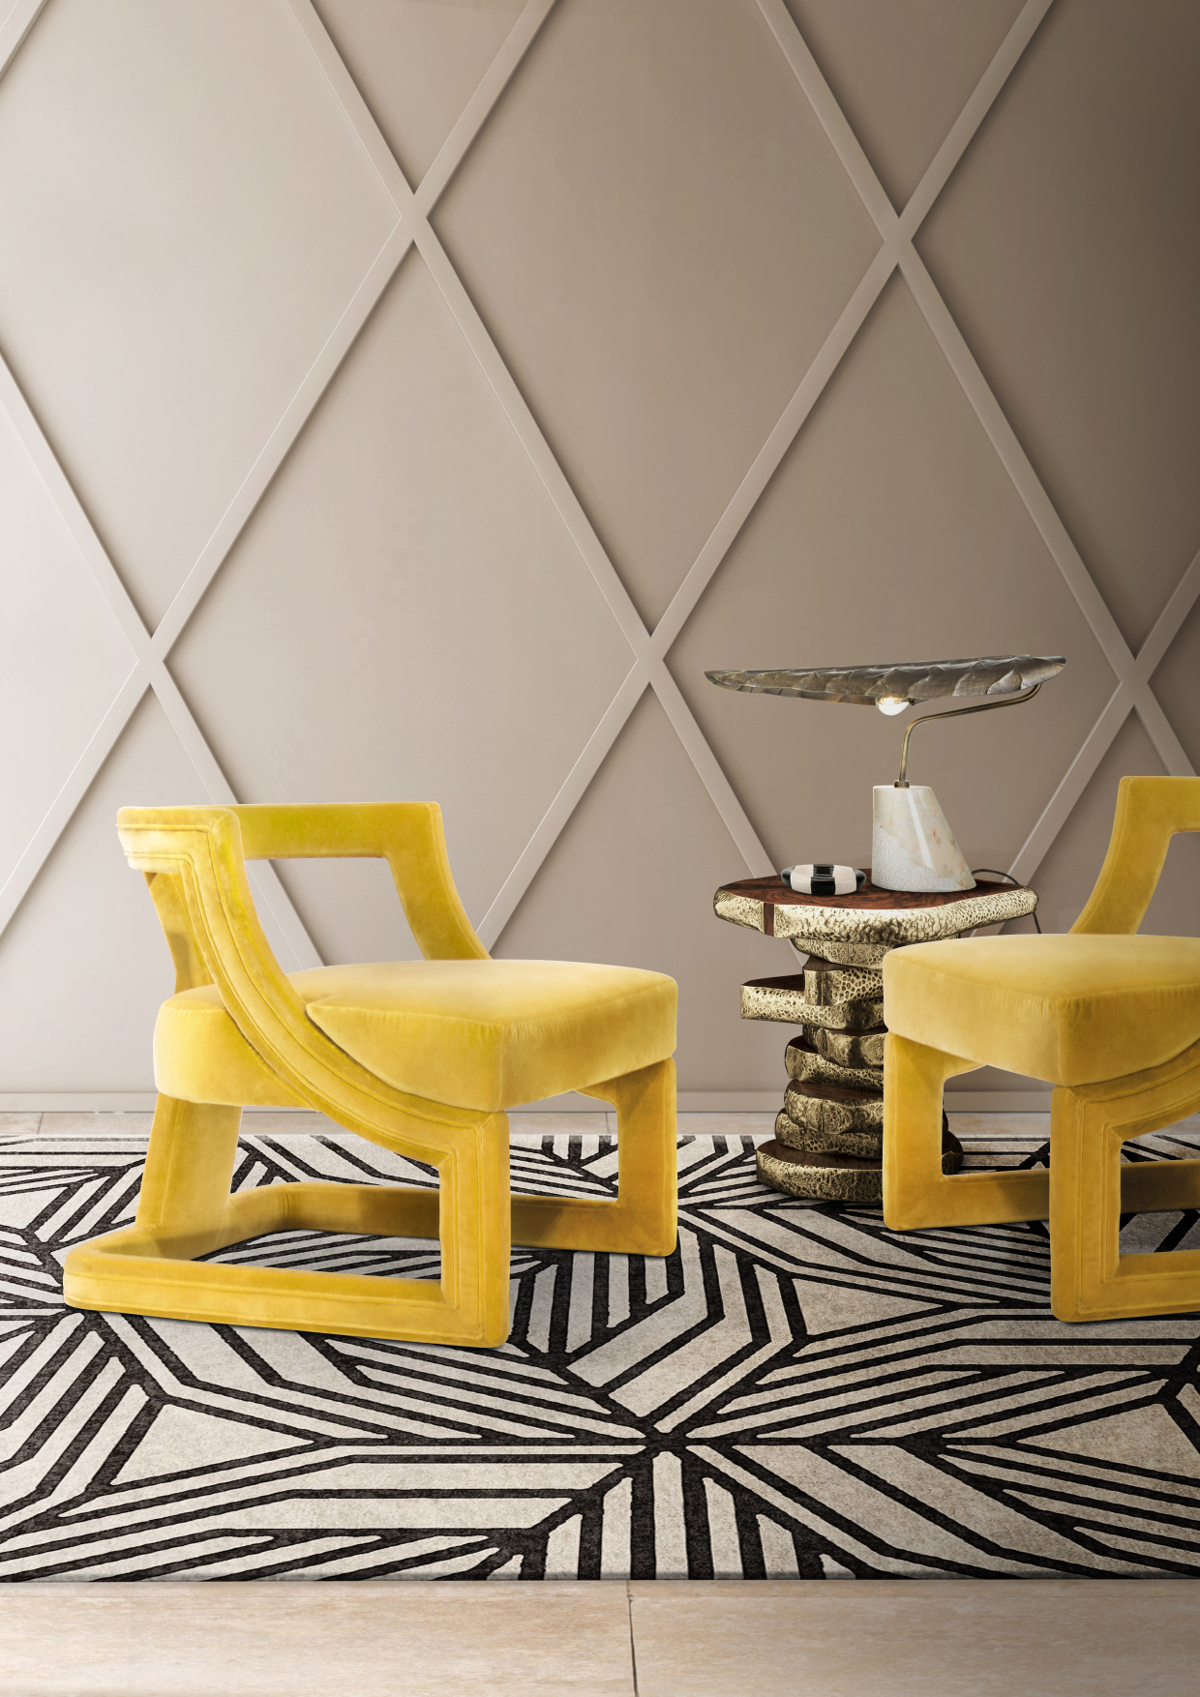 Yellow Chairs: Modern Design That Will Light Up Your House  yellow chairs Yellow Chairs: Modern Design That Will Light Up Your House batak armchairless 1